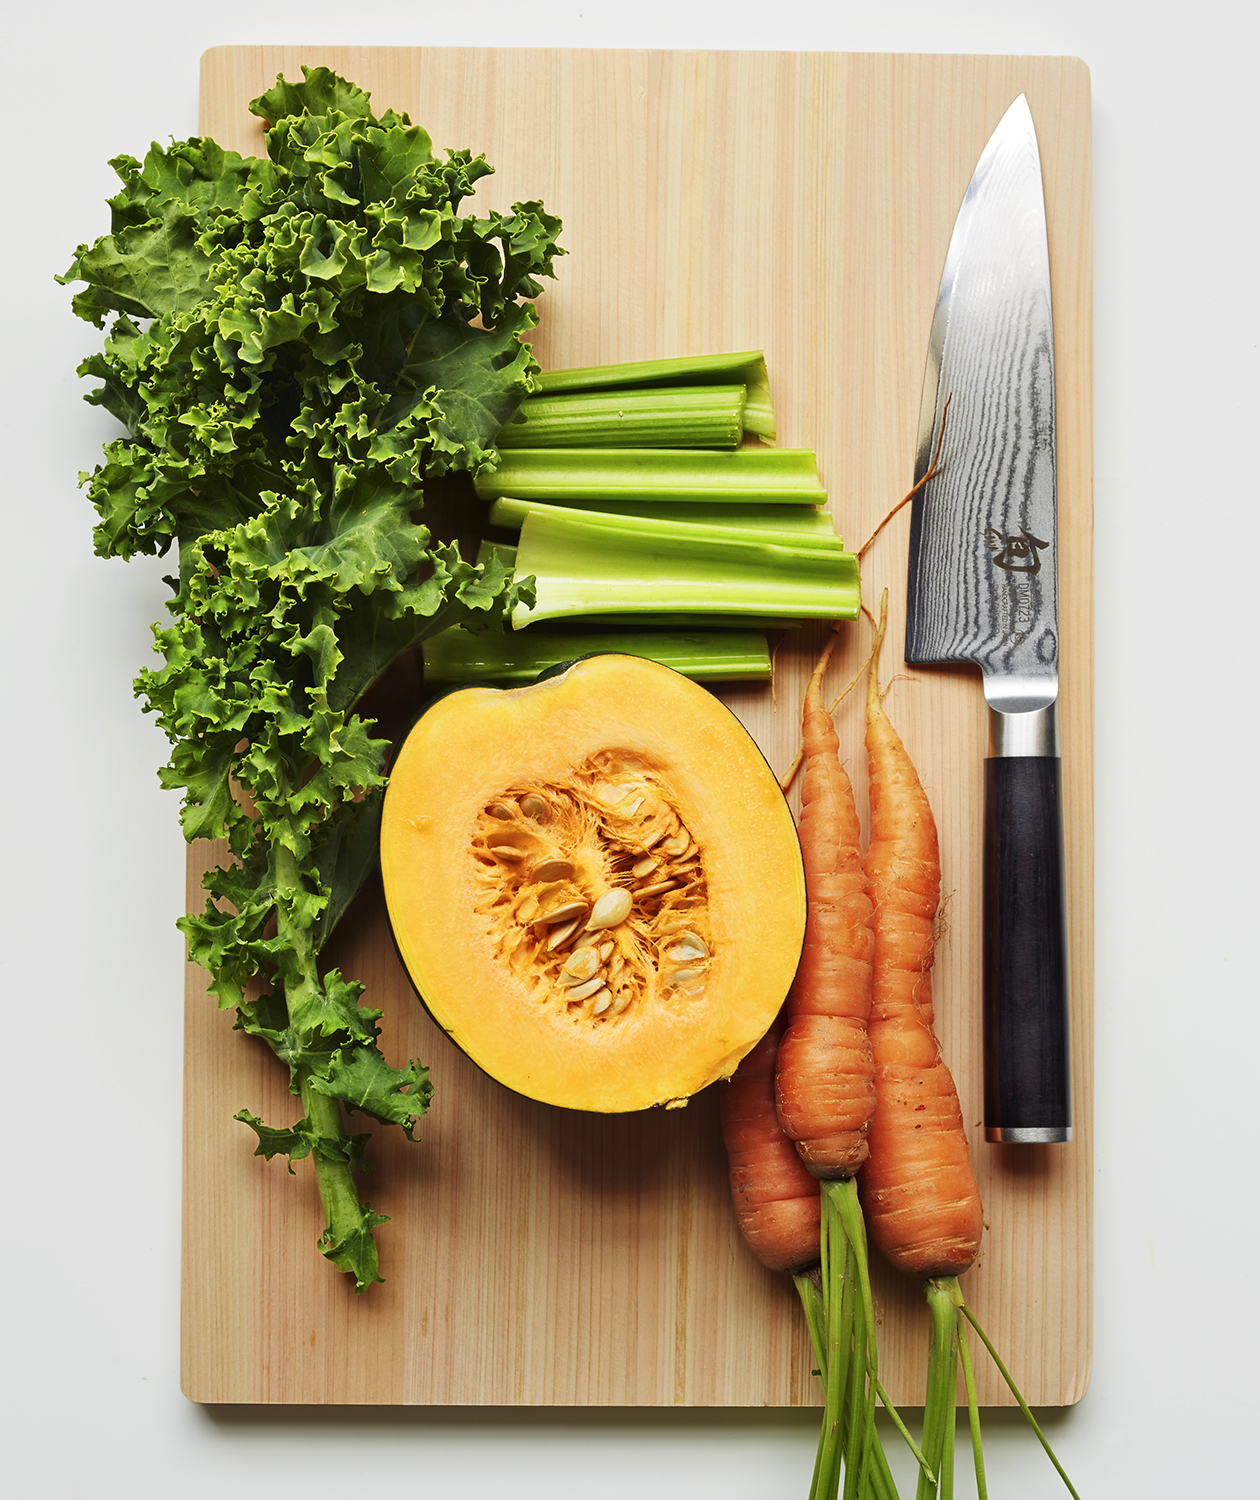 Cutting board, knife, vegetables